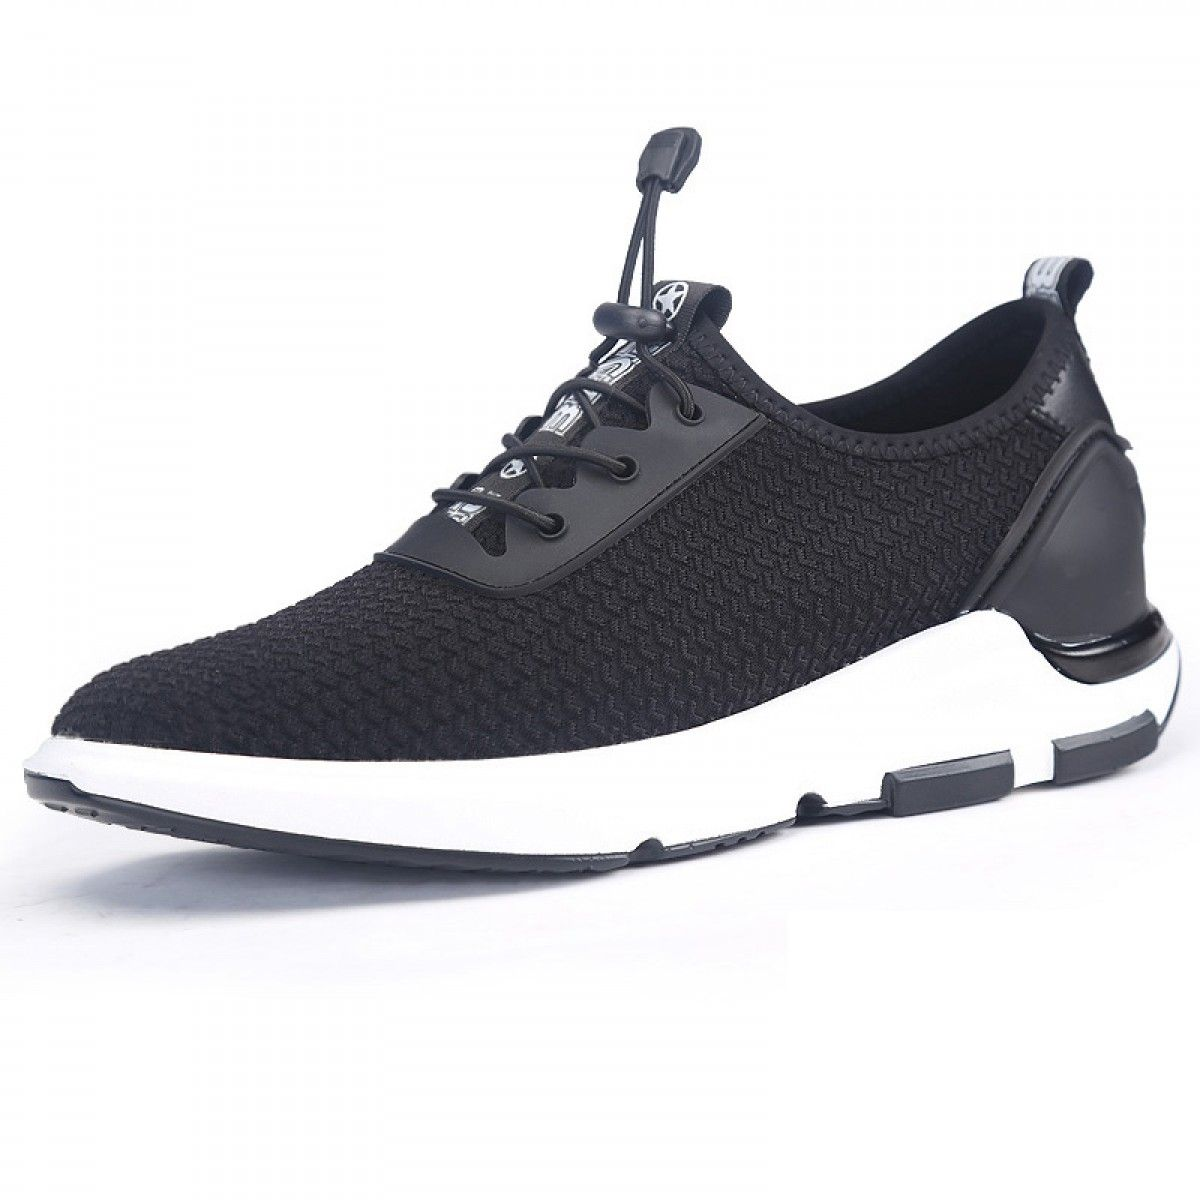 Shoes Women Men Adidas Running Shoes AutumnWinter 2018